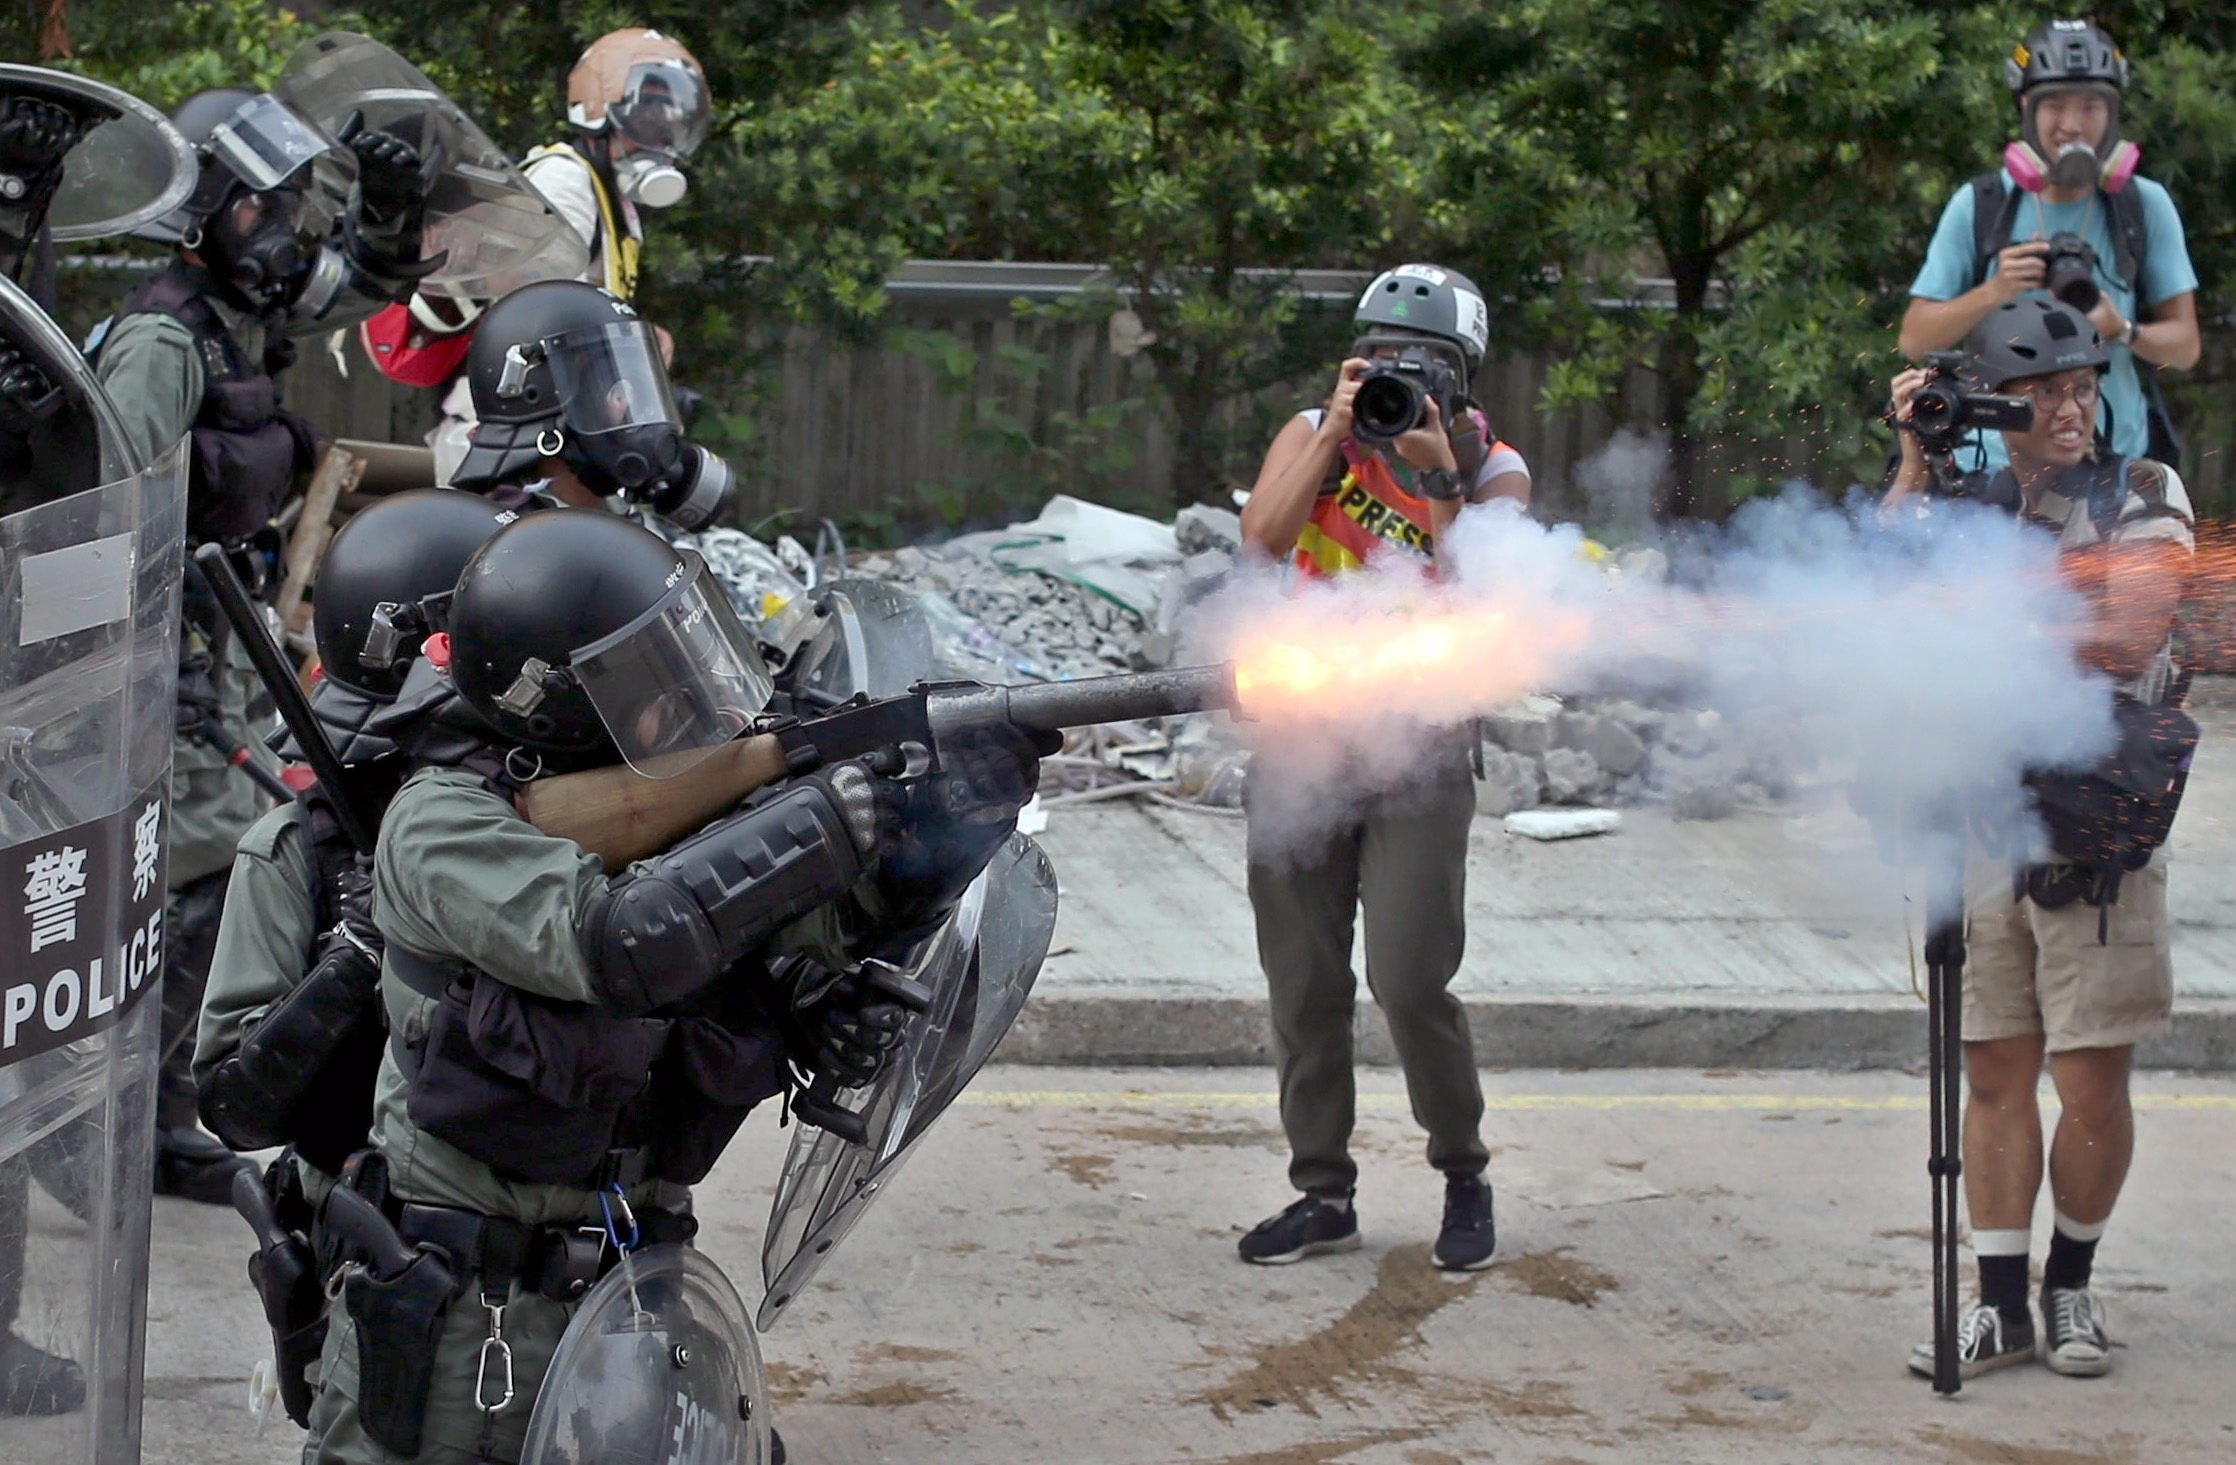 Hong Kong police fire tear gas as protests take violent turn